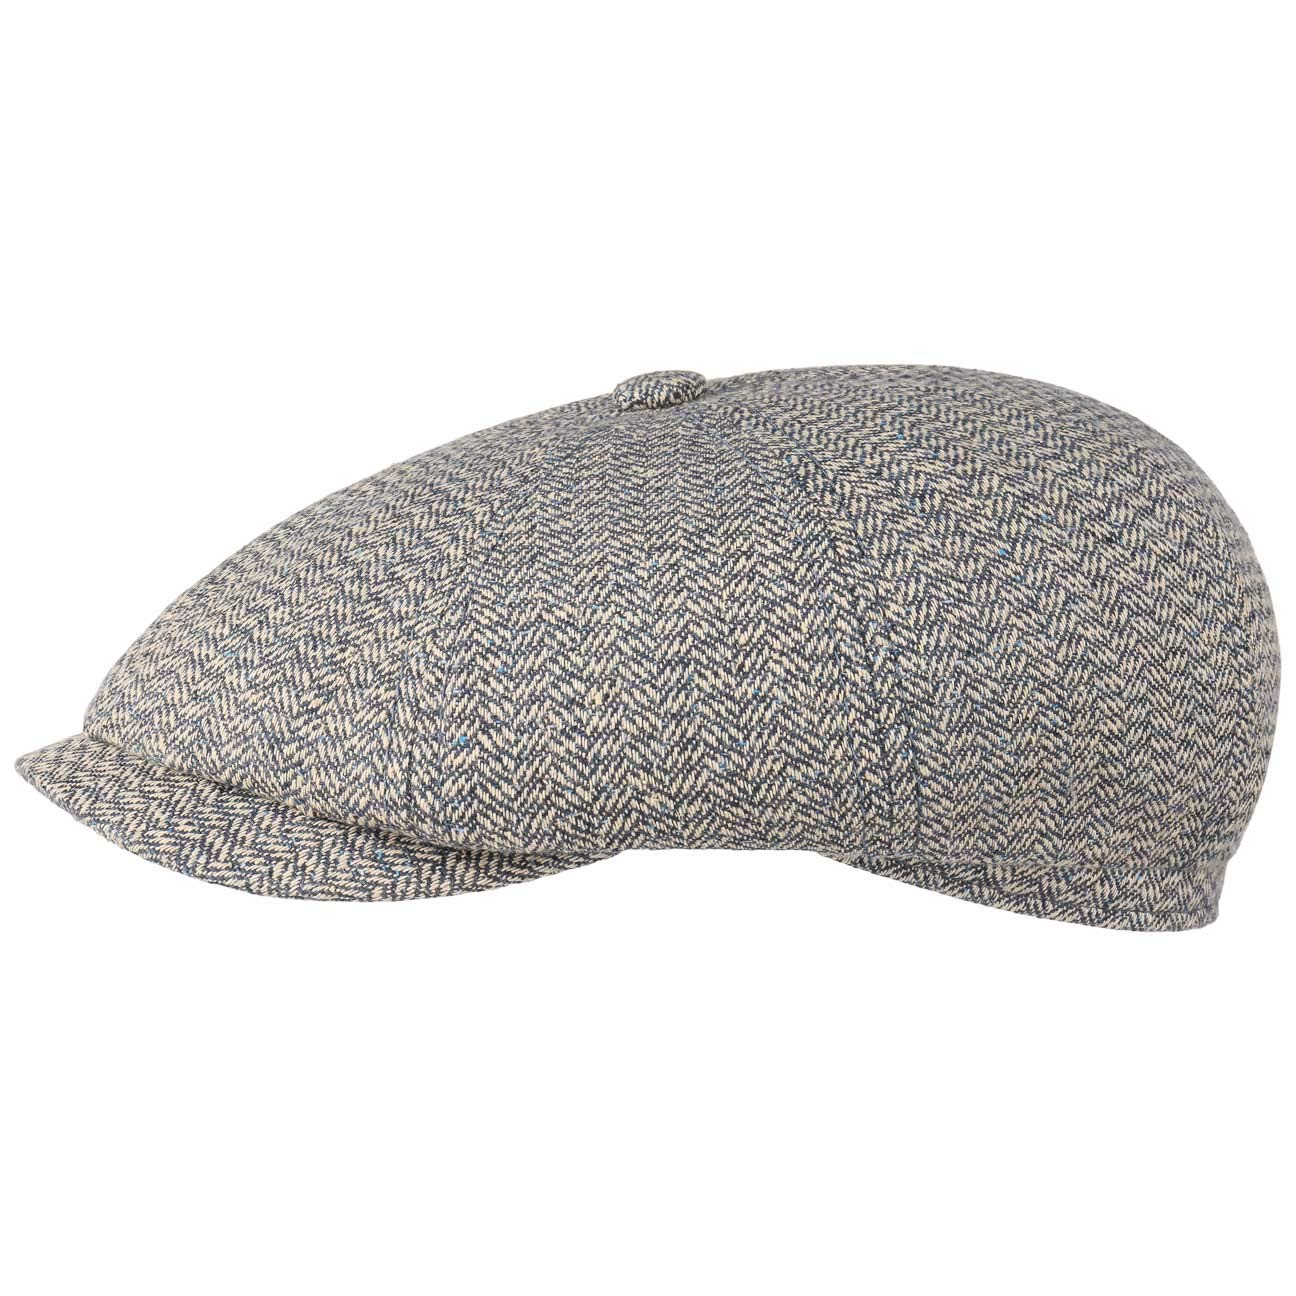 aba95c483da Stetson Hatteras Heritage Silk Wool Flat Cap Newsboy  Amazon.co.uk  Clothing